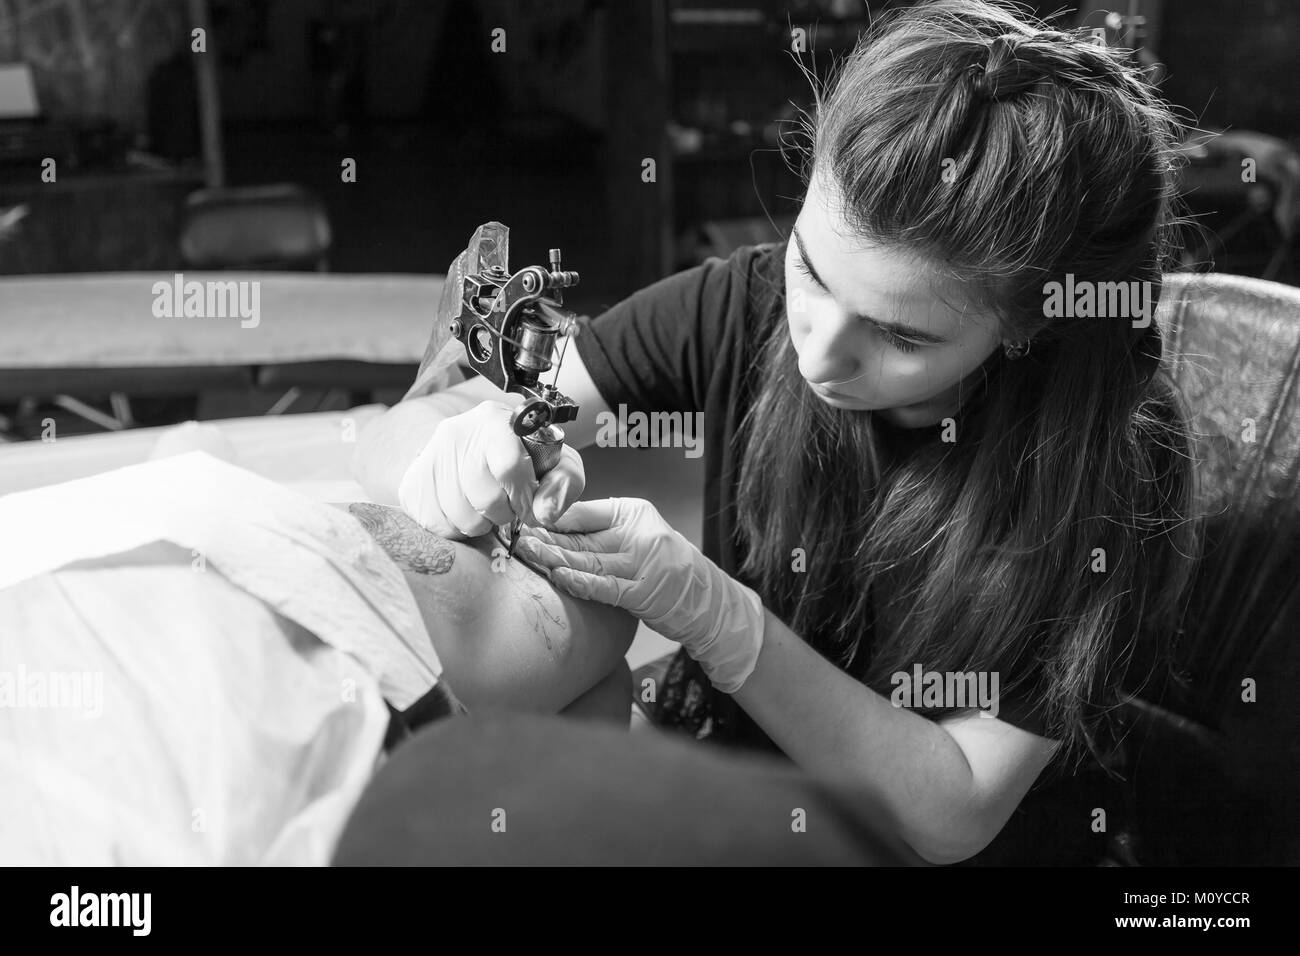 Beautiful dark-haired woman tattoo artist drawing a tattoo for a tattoo, close-up, bottom view - Stock Image